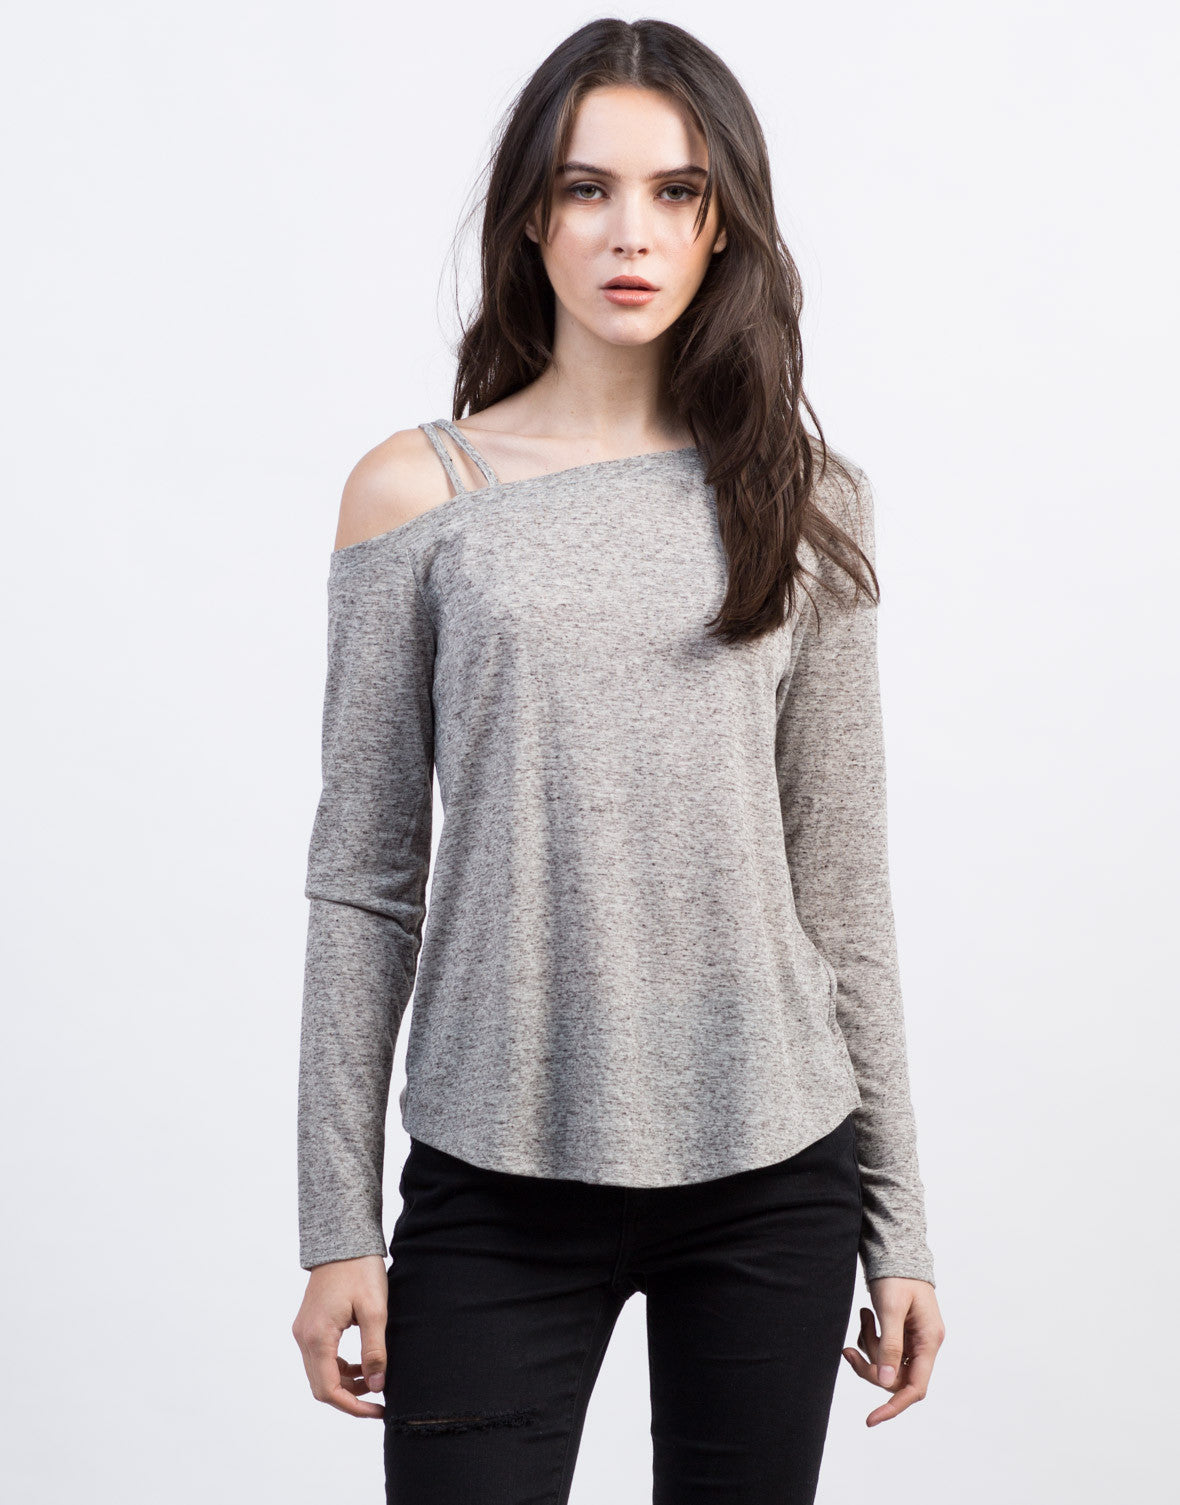 Front View of Long Sleeve Shoulder Strapped Top